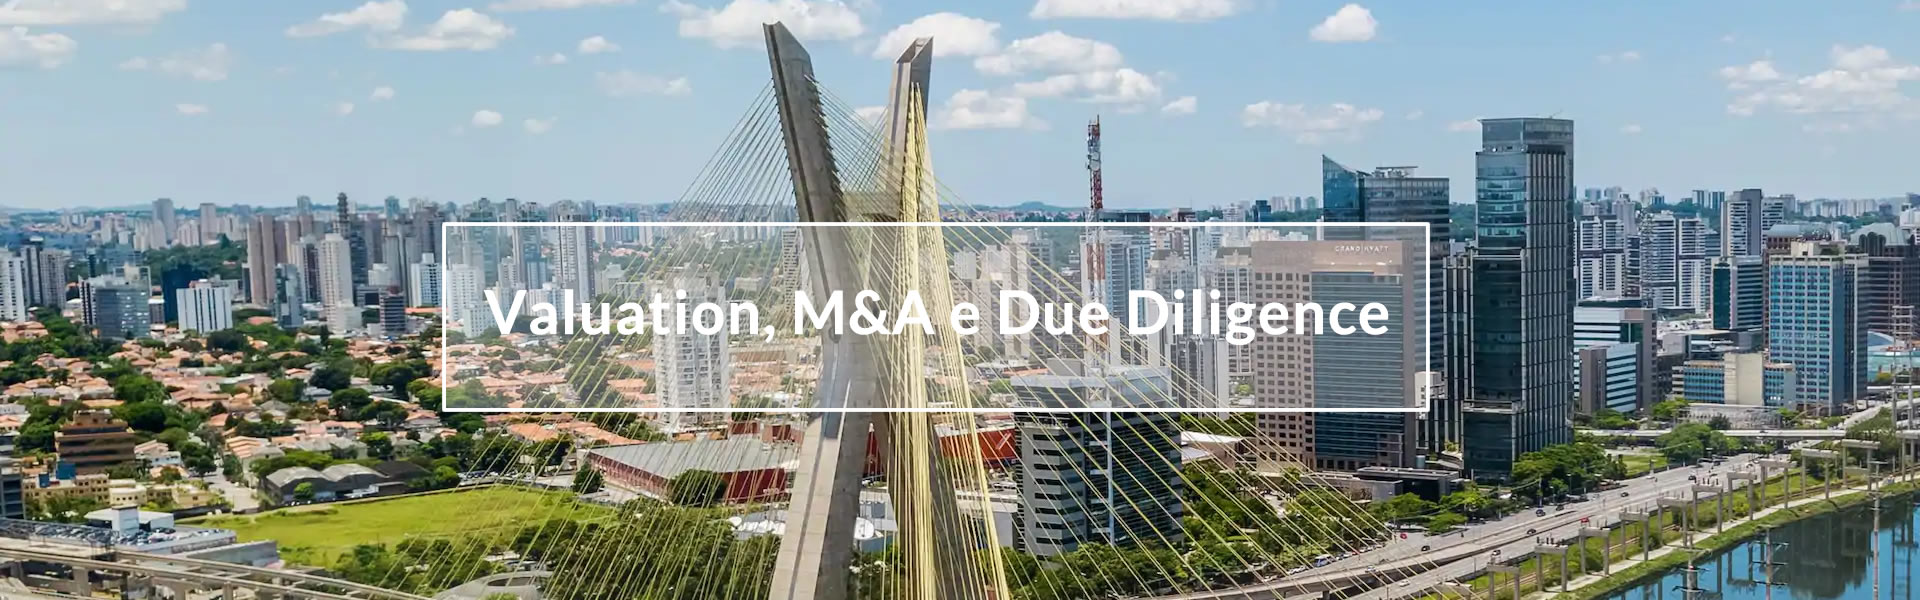 Valuation, M&A e Due Diligence